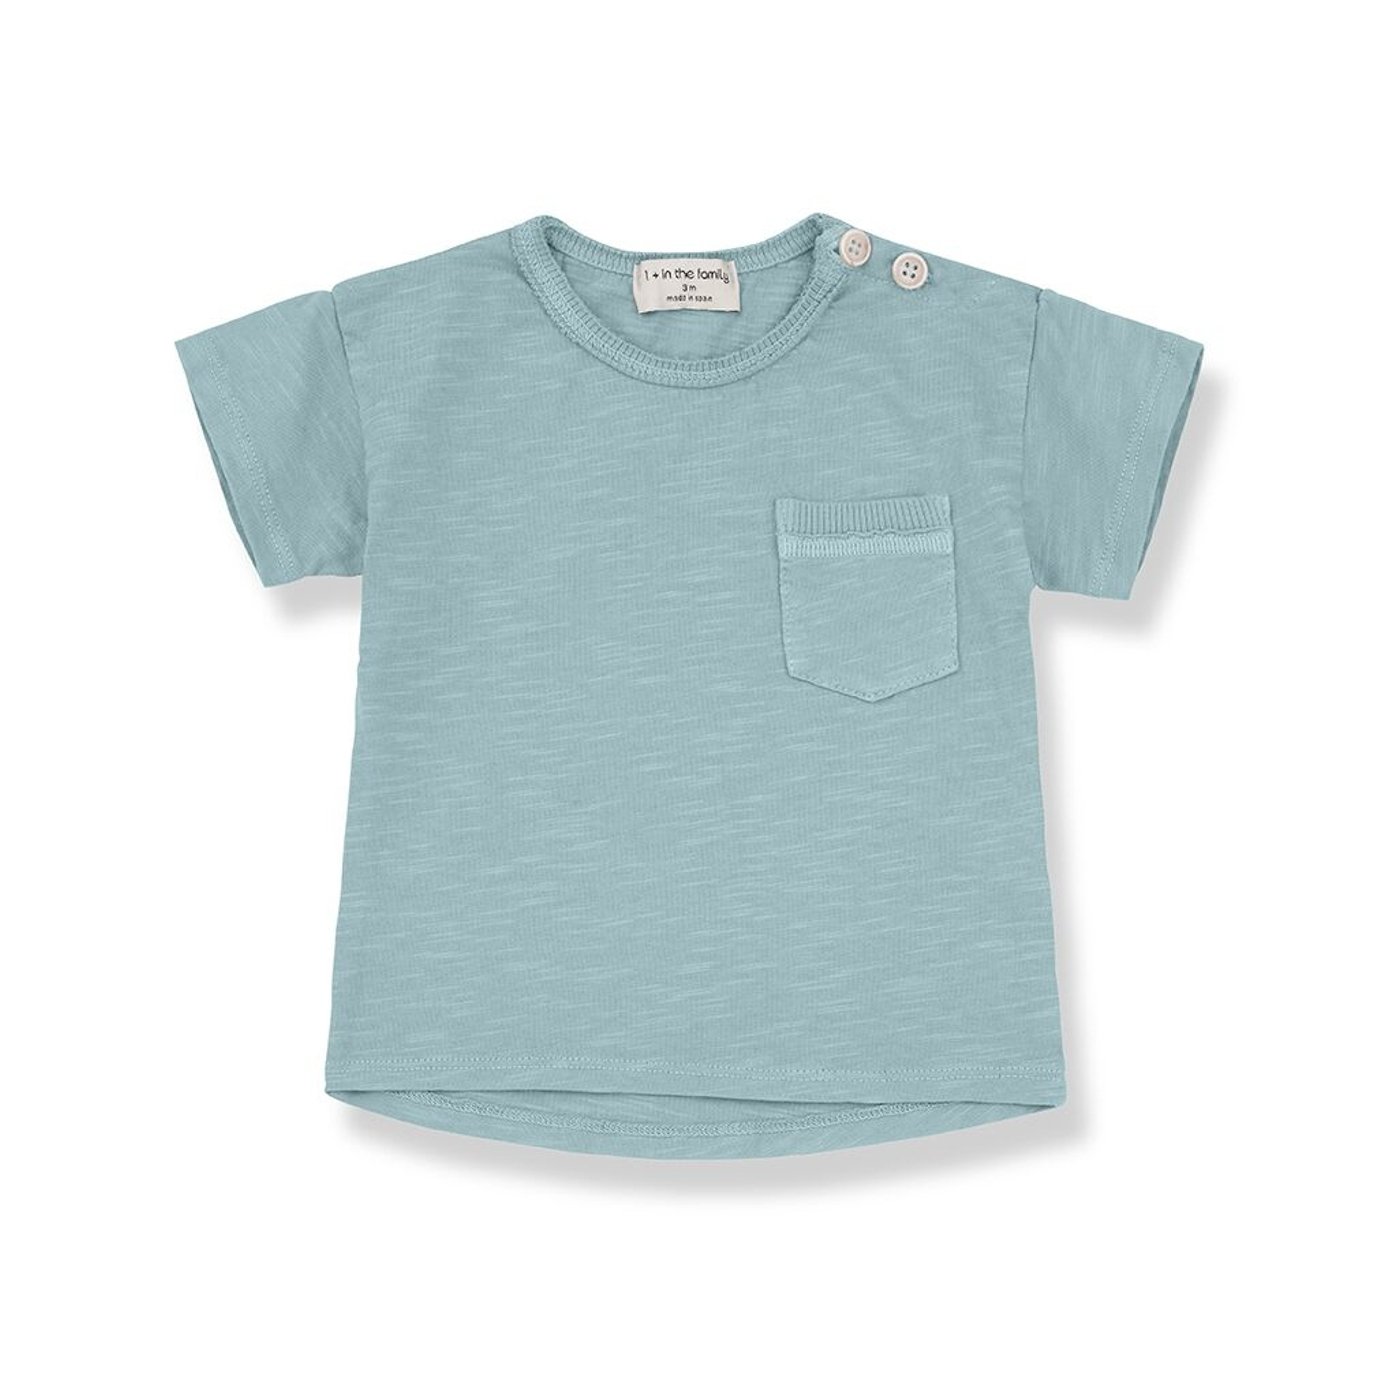 1 + in the family - Vicco T-shirt Green - 1